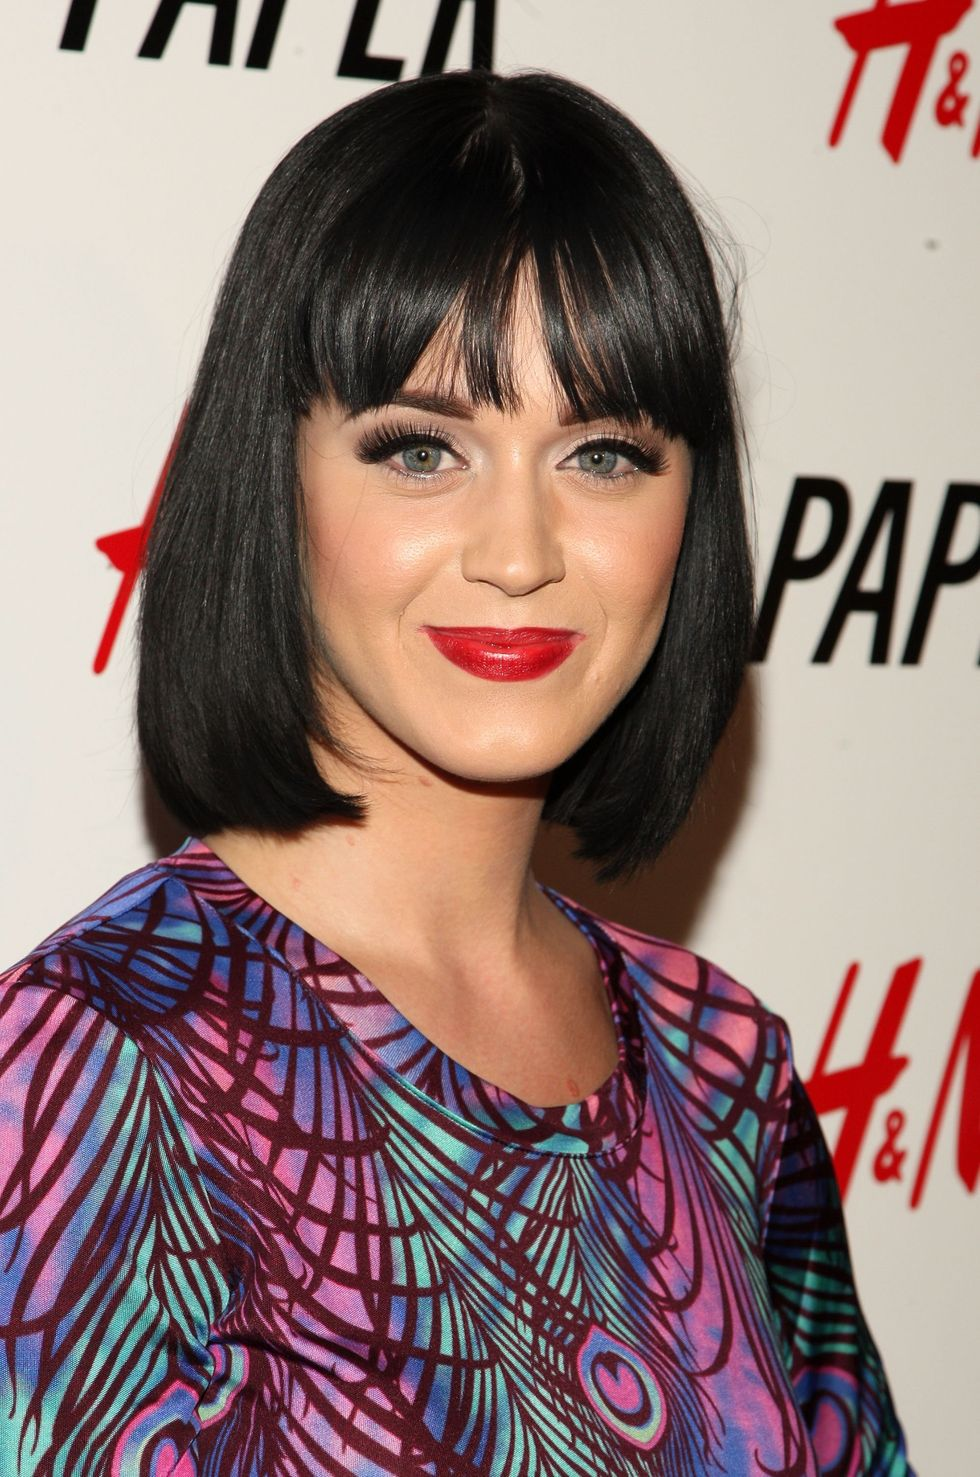 katy-perry-paper-magazines-the-beautiful-people-party-2009-01